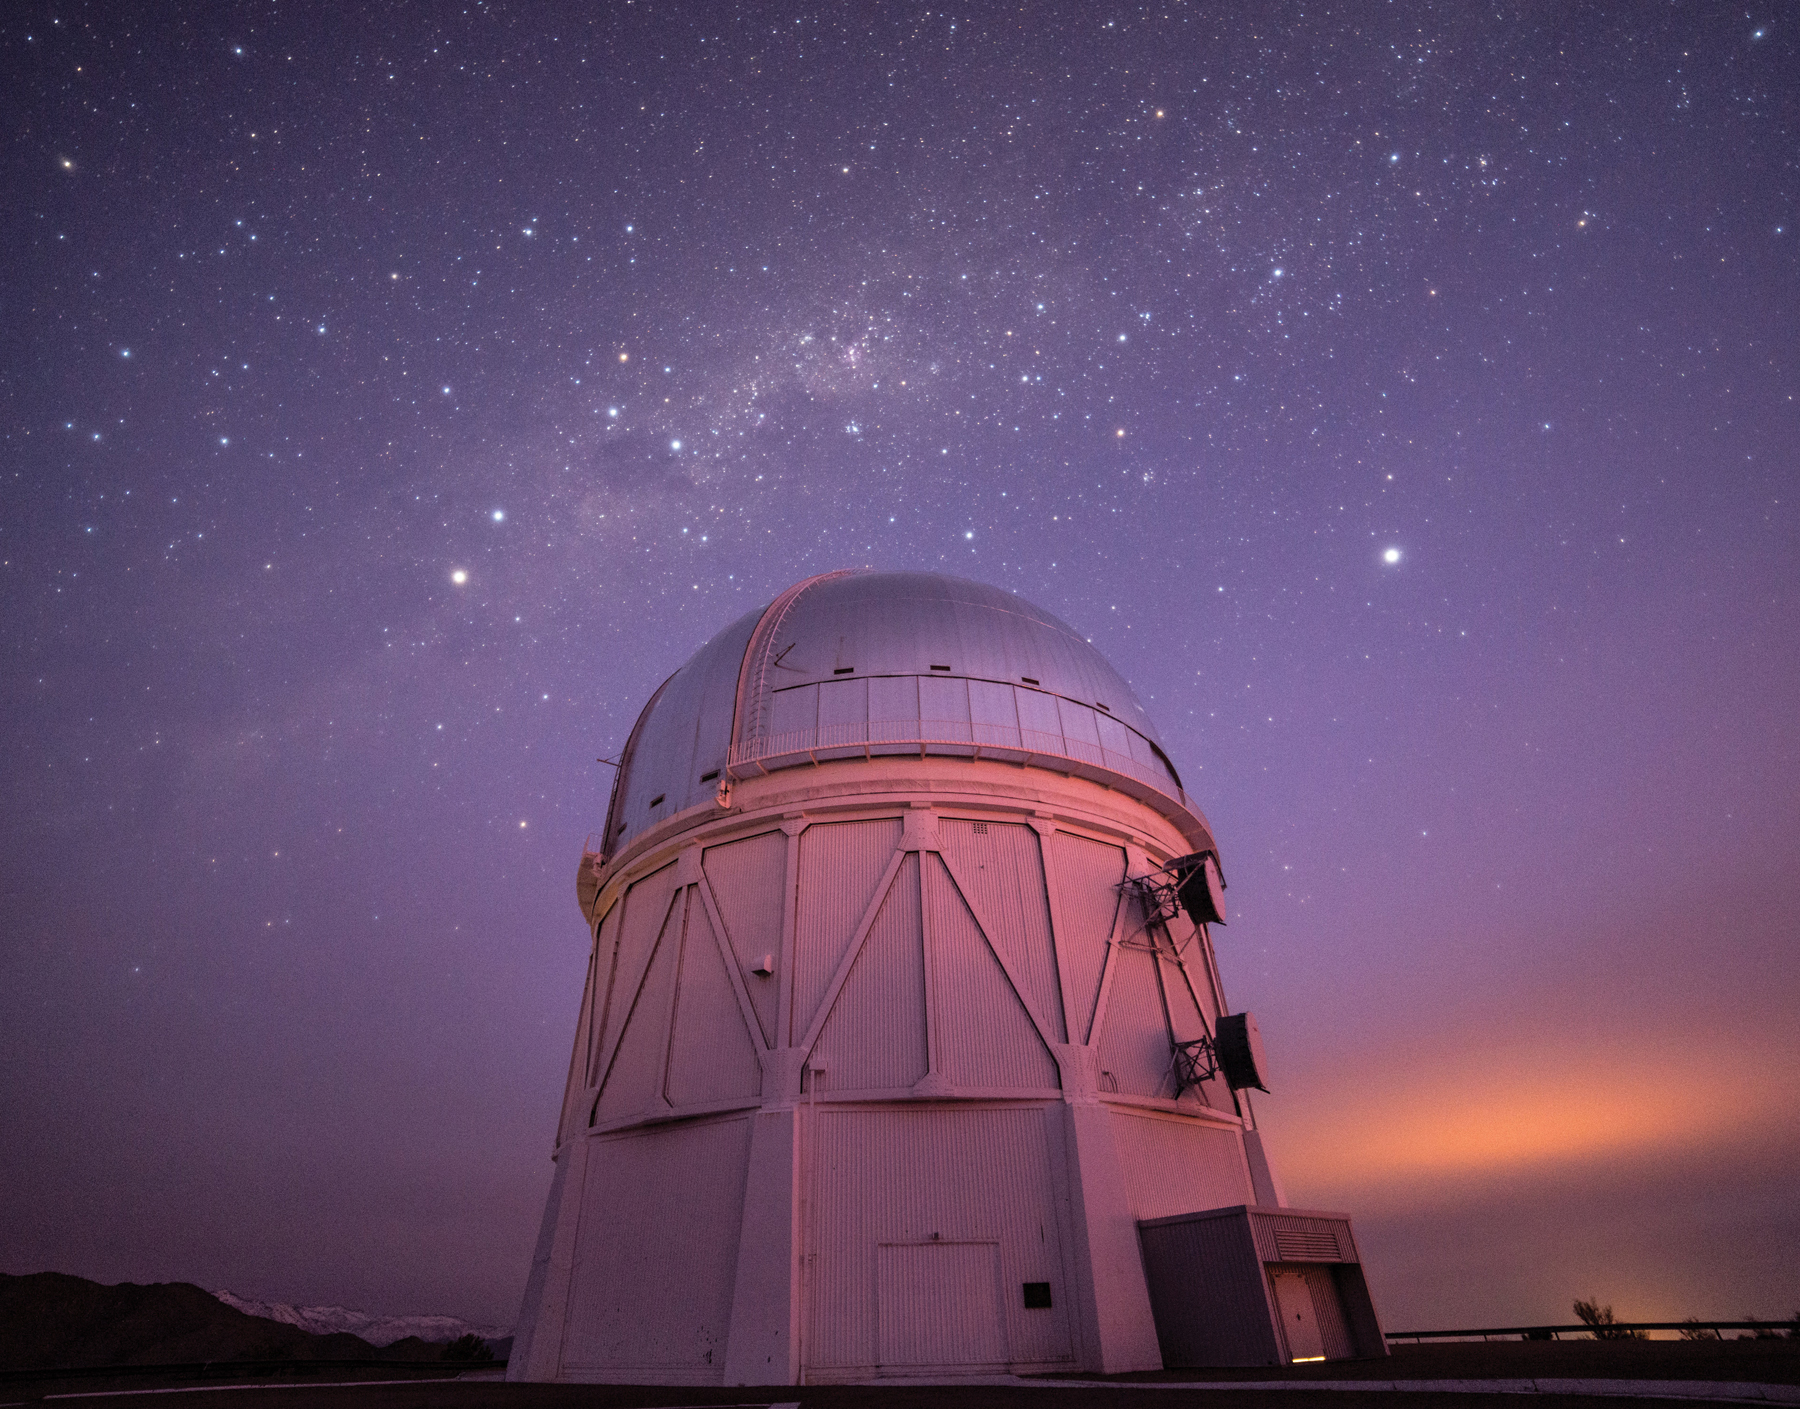 Press Release: Protecting Dark Skies for Astronomy and Life Image